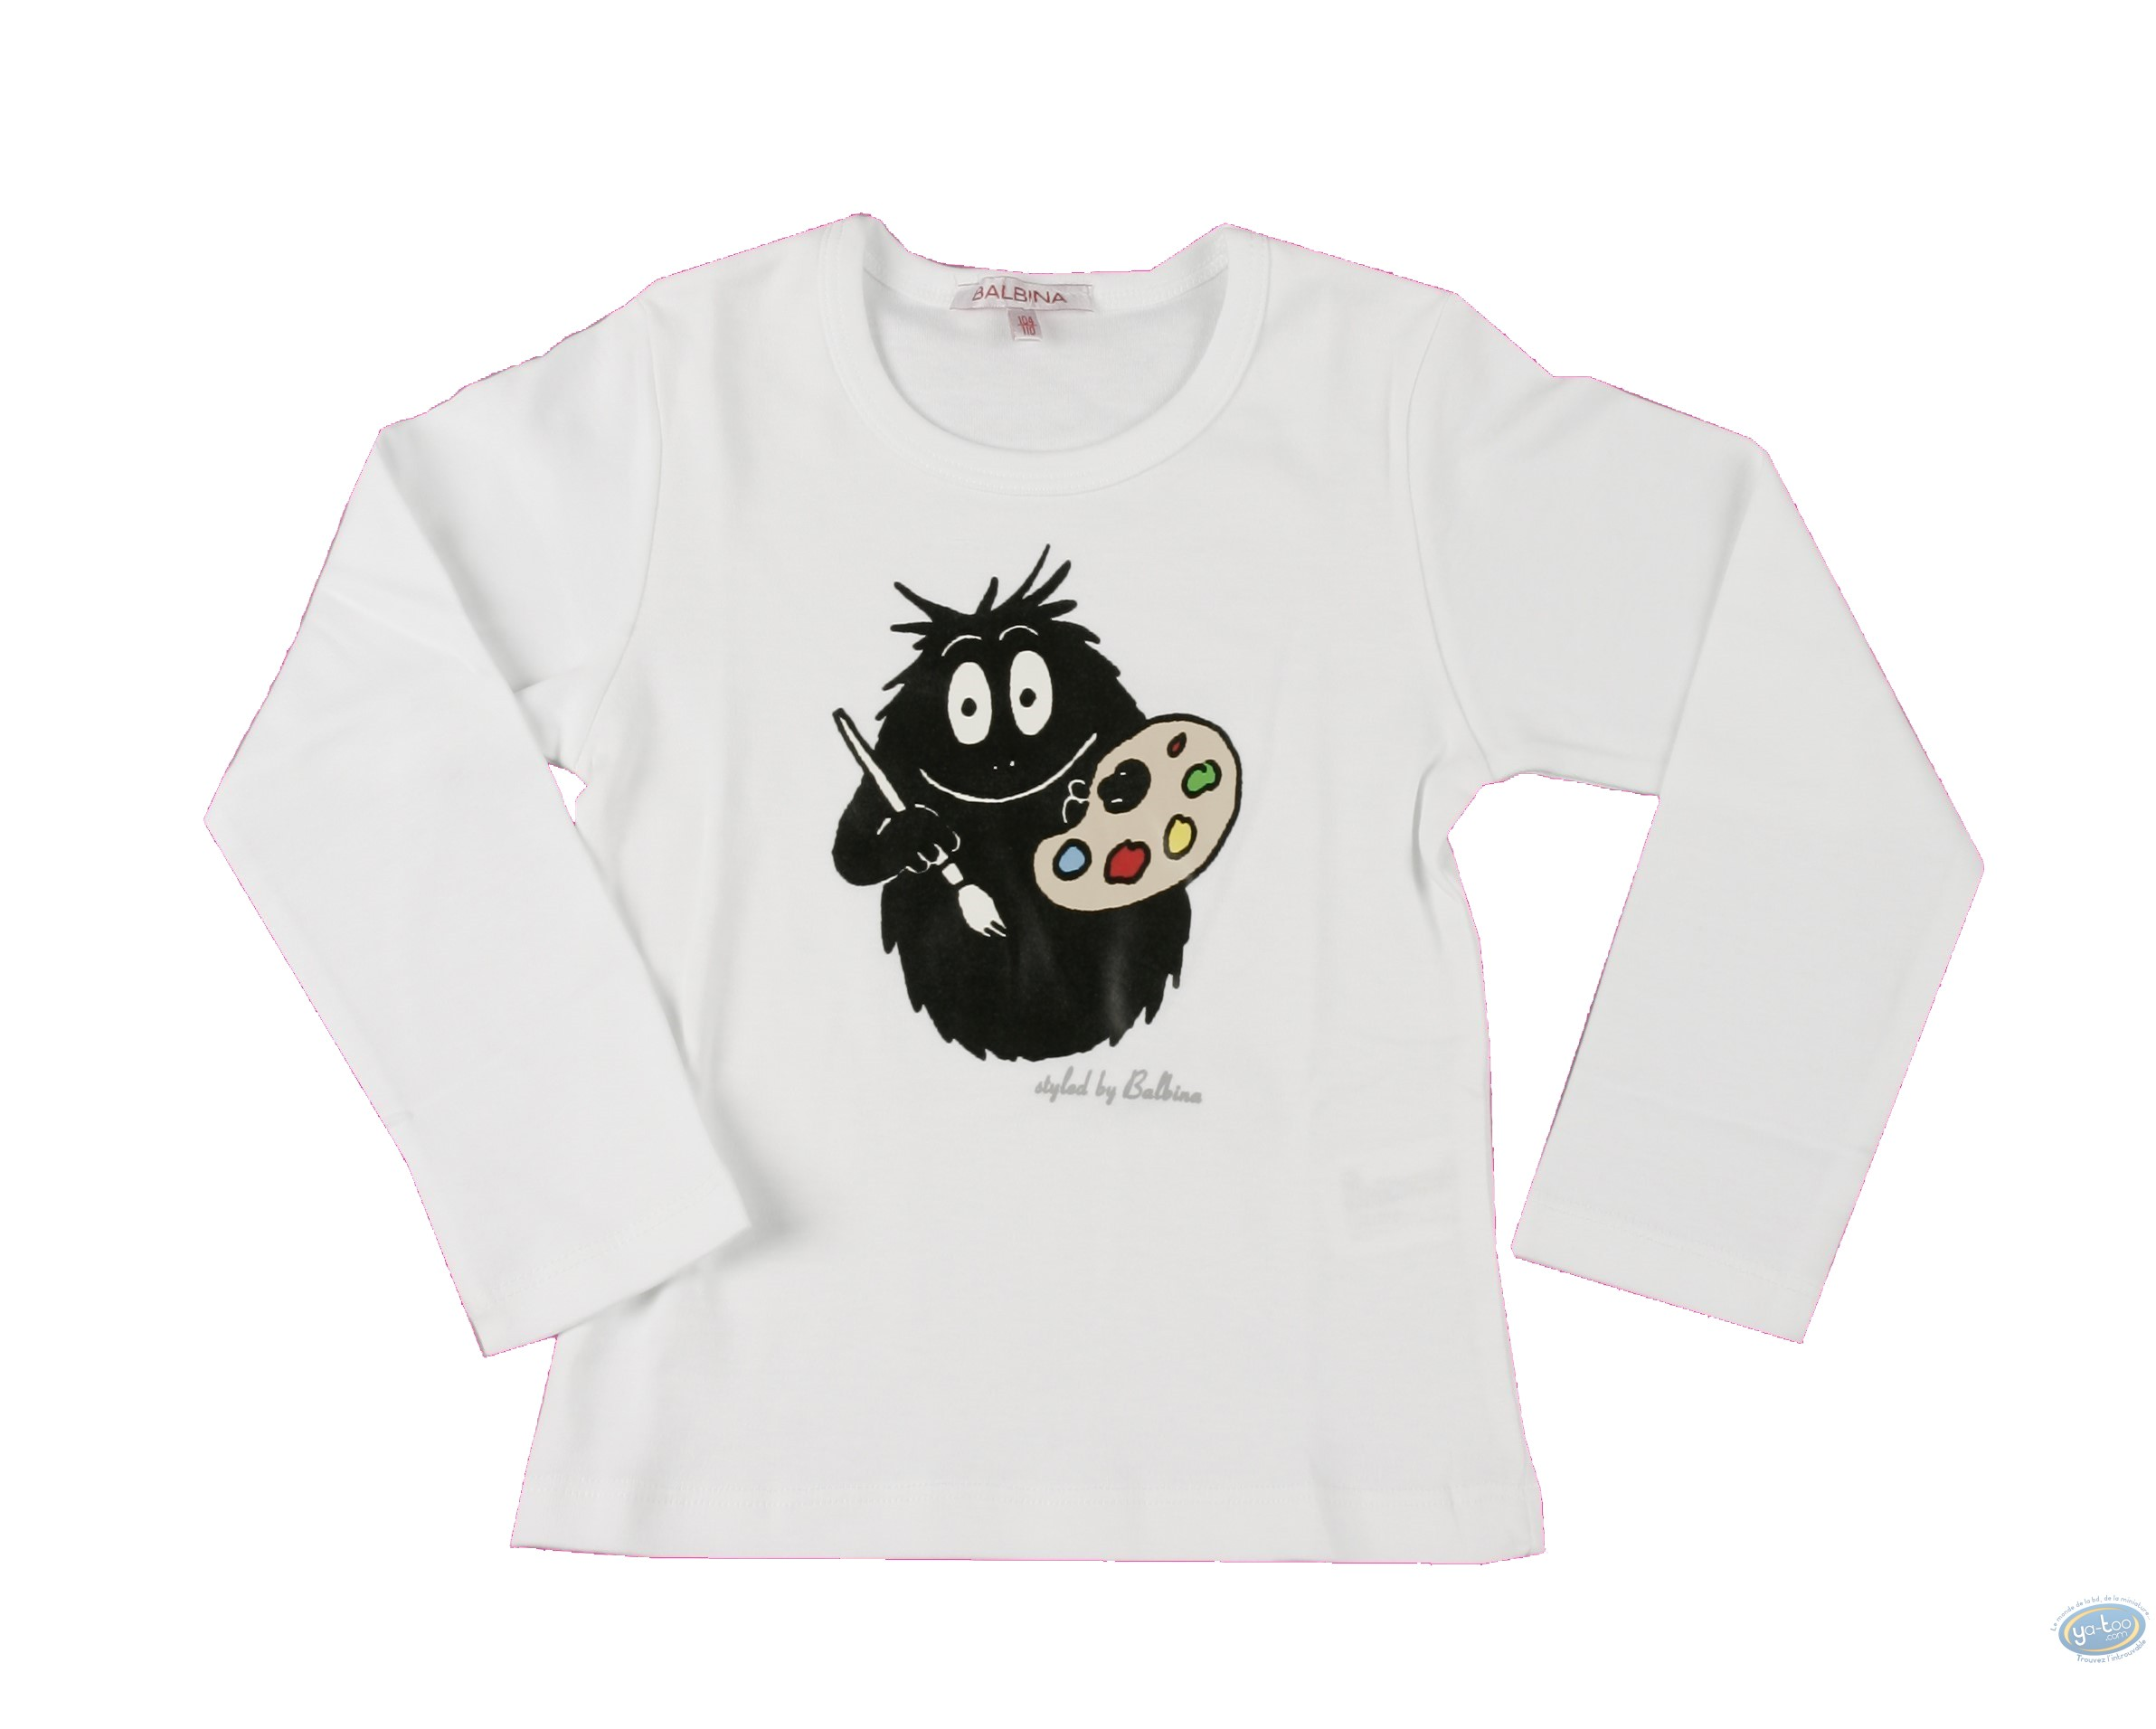 Clothes, Barbapapa : T-shirt long-sleeve white Barbapapa for kid : size 152/158, painter